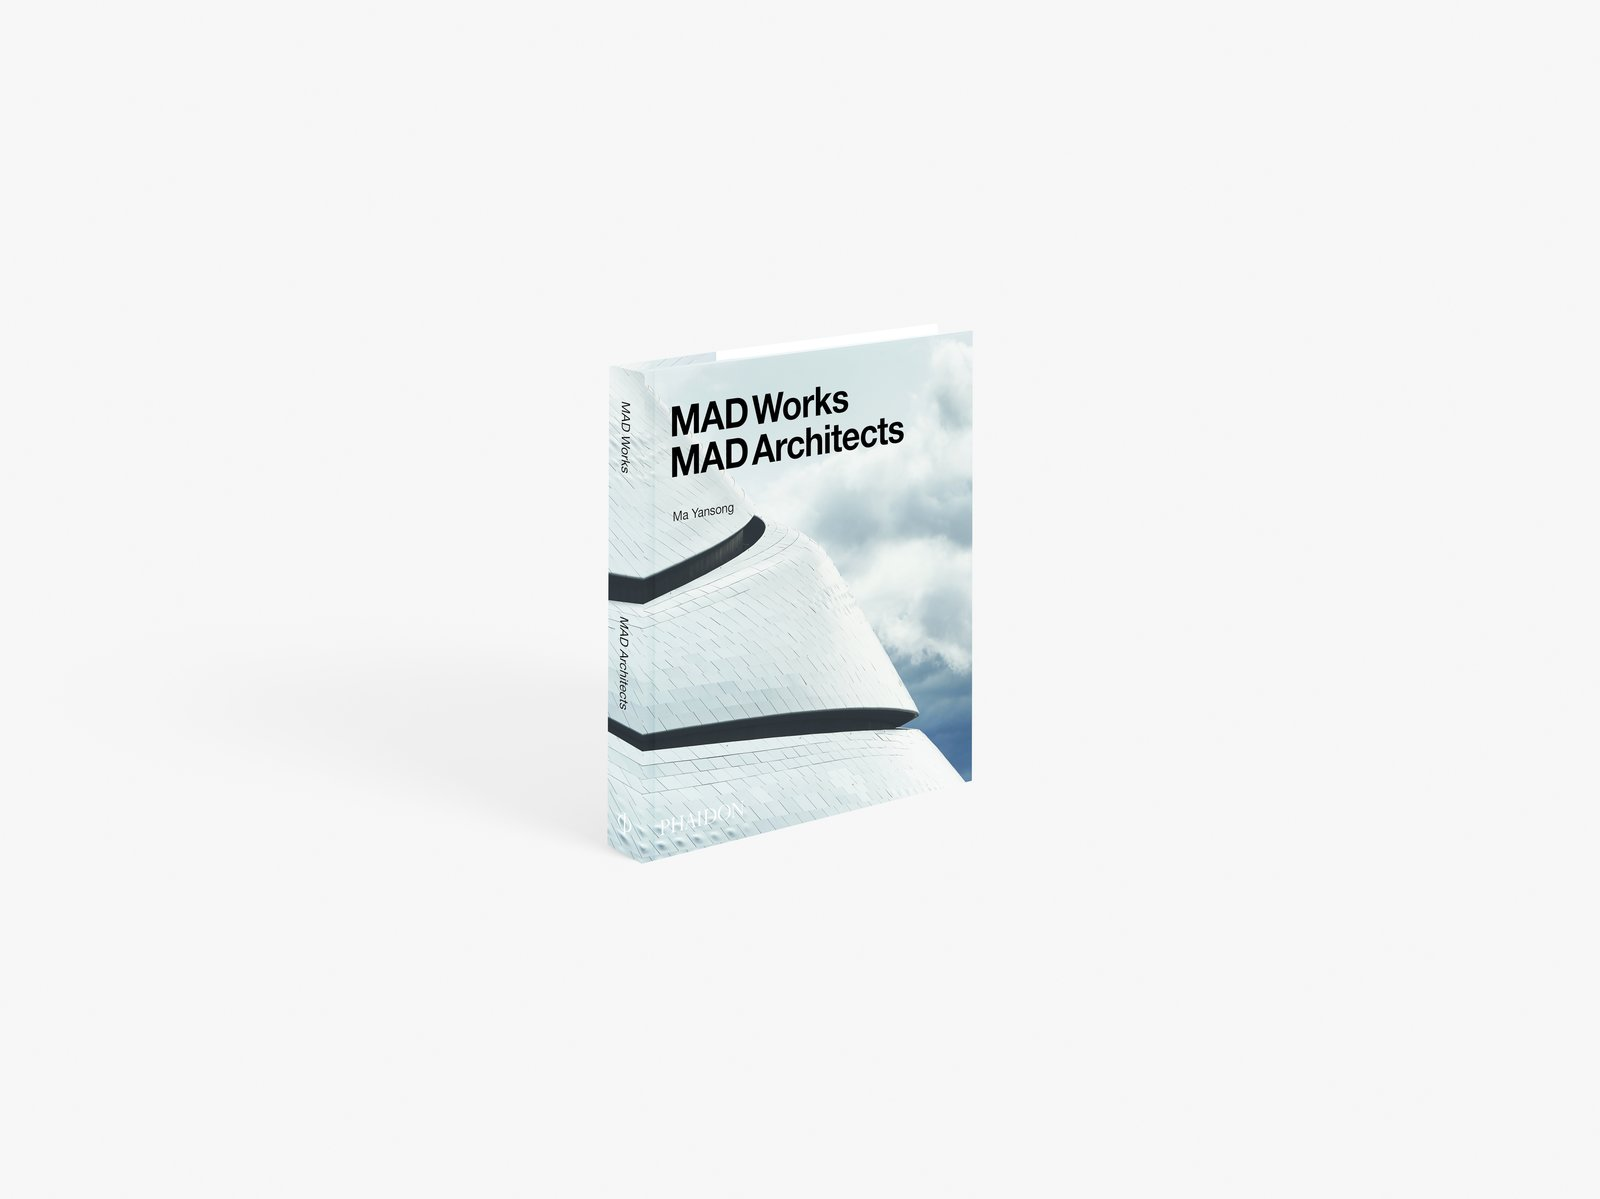 "Available in October 2016 from Phaidon, ""MAD Works"" is the first monograph dedicated to MAD Architects, the boundary-breaking firm founded in 2004 by Ma Yansong. With offices in Beijing and Los Angeles, the firm has made a signature of its futuristic interpretations of nature.   As the architect explains in the book's introduction: ""People often ask what MAD stands for; sometimes I explain it stand for MA Design, but I like MAD (adjective) Architects better. It sounds like a group of architects with an attitude towards design and practice ... MAD is an attitude that works.""  Discover the Fantastical Future Vision of a Beijing Architect by Heather Corcoran"